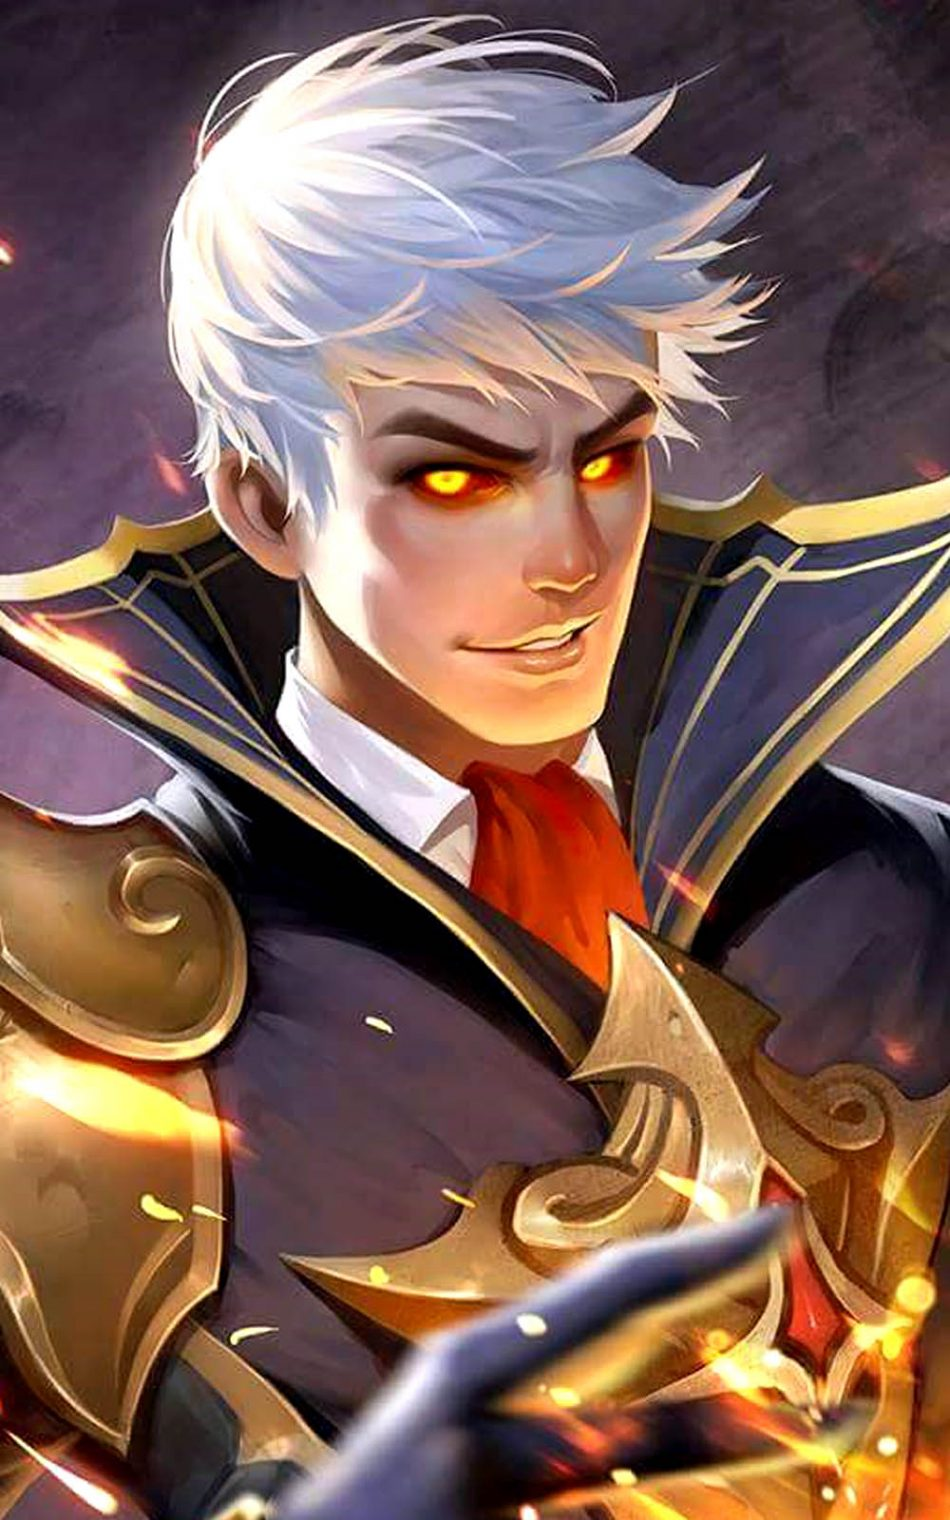 Alucard Child Of The Fall Wallpaper Hd The Fiery Inferno Alucard Mobile Legends Download Free